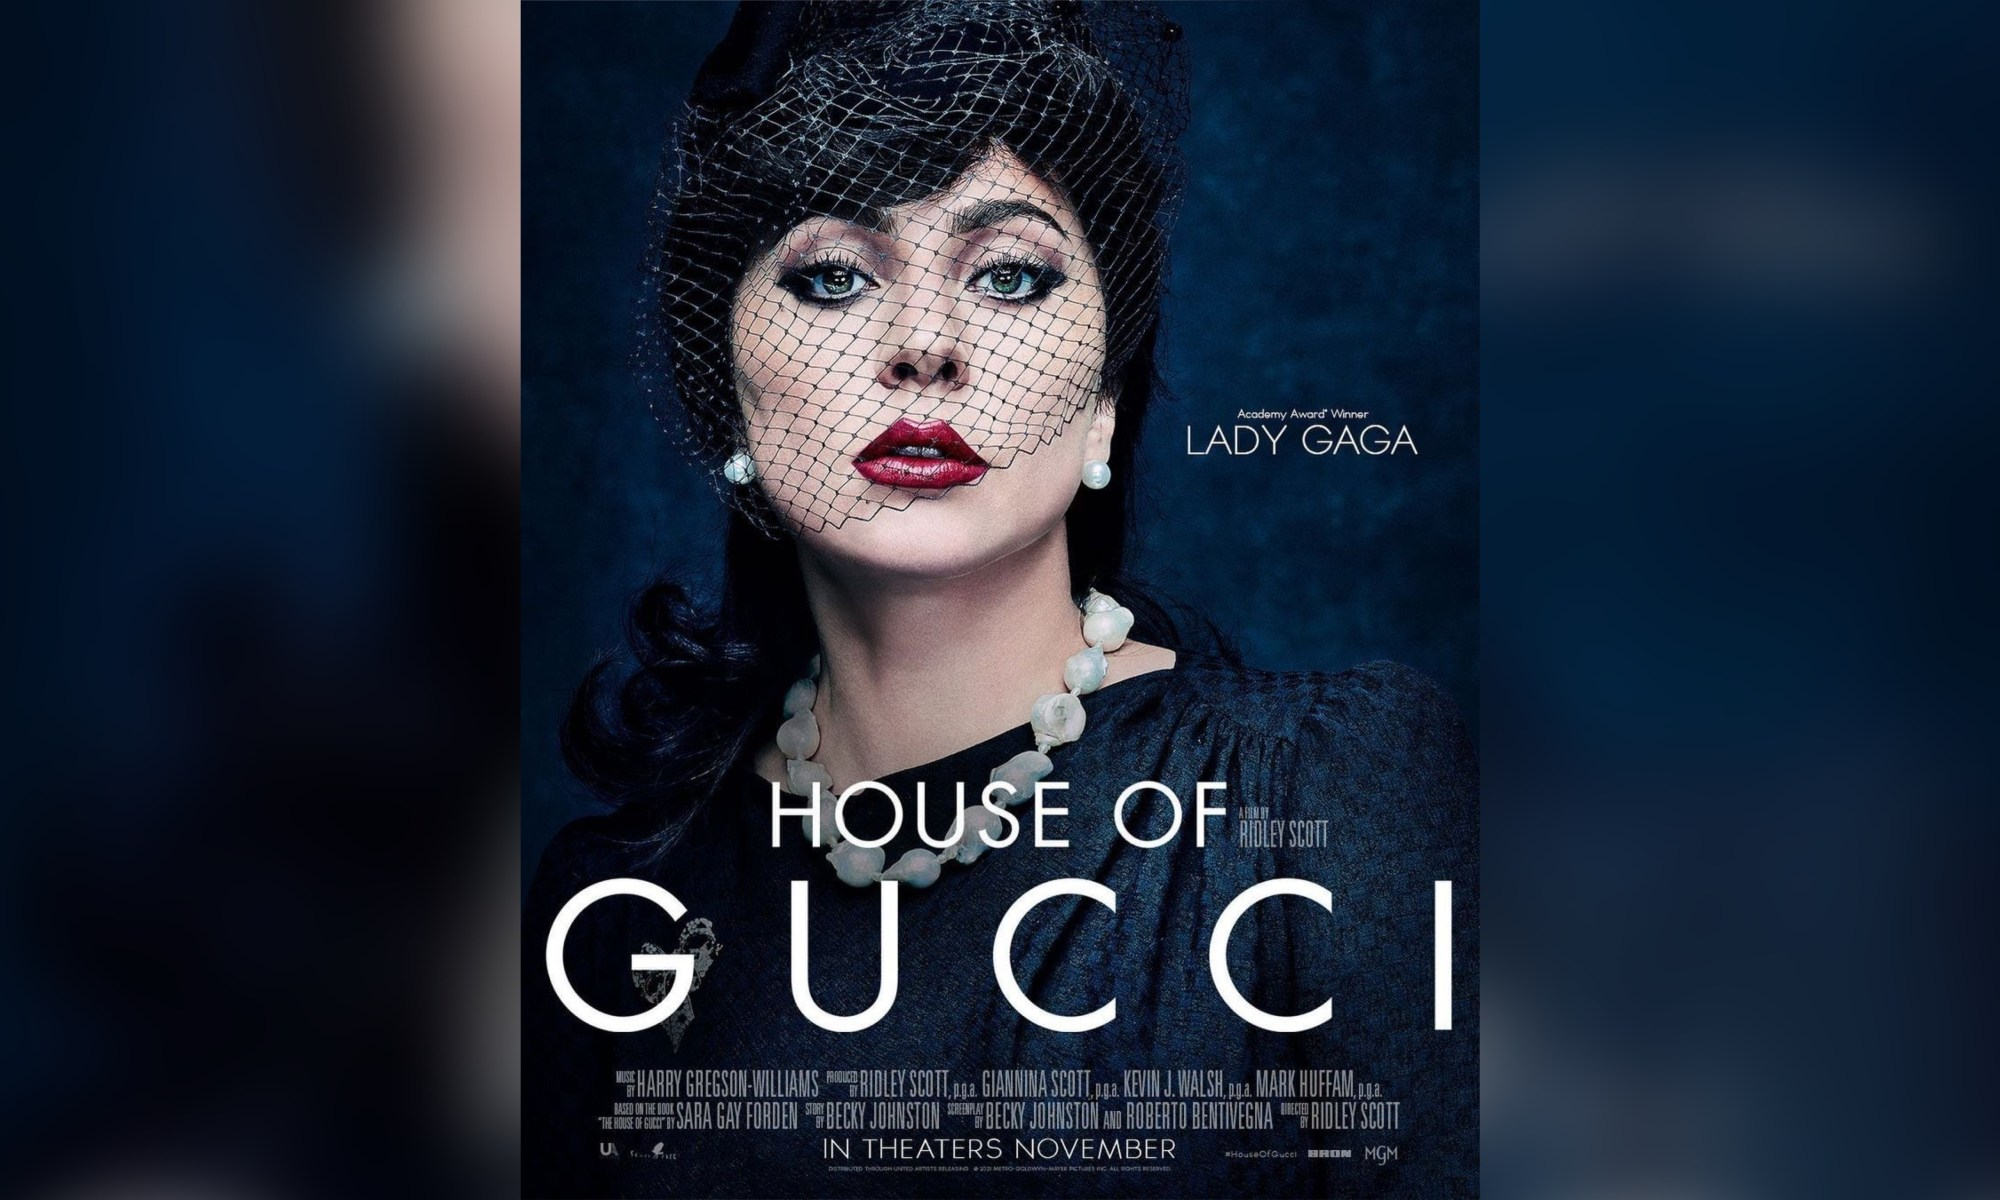 House-of-gucci-bande-annonce